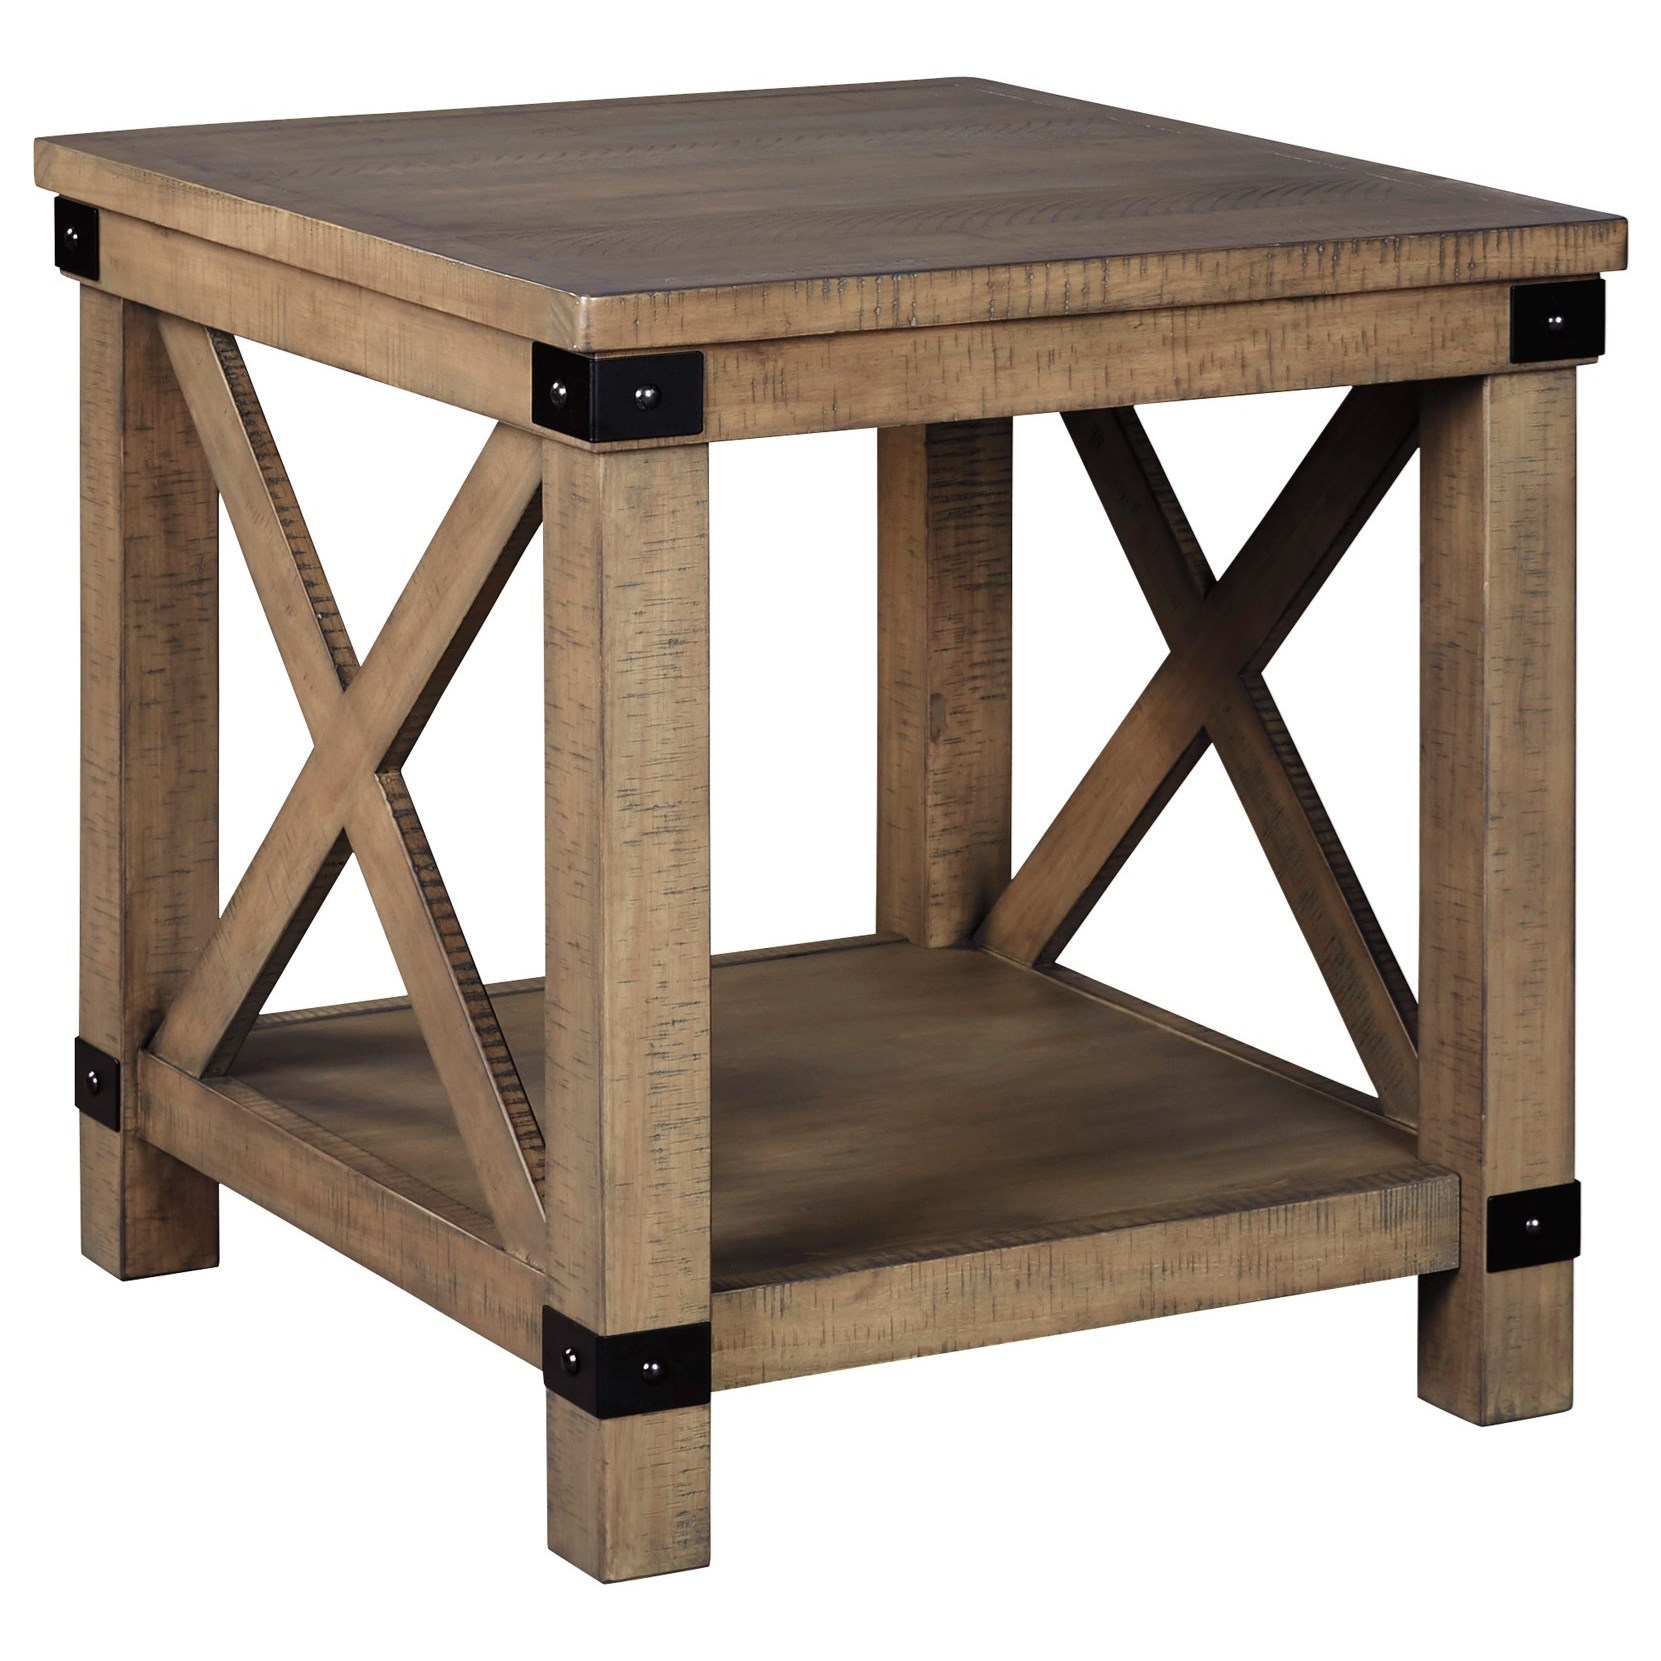 Aldwin Rectangular End Table by Signature Design by Ashley at Catalog Outlet